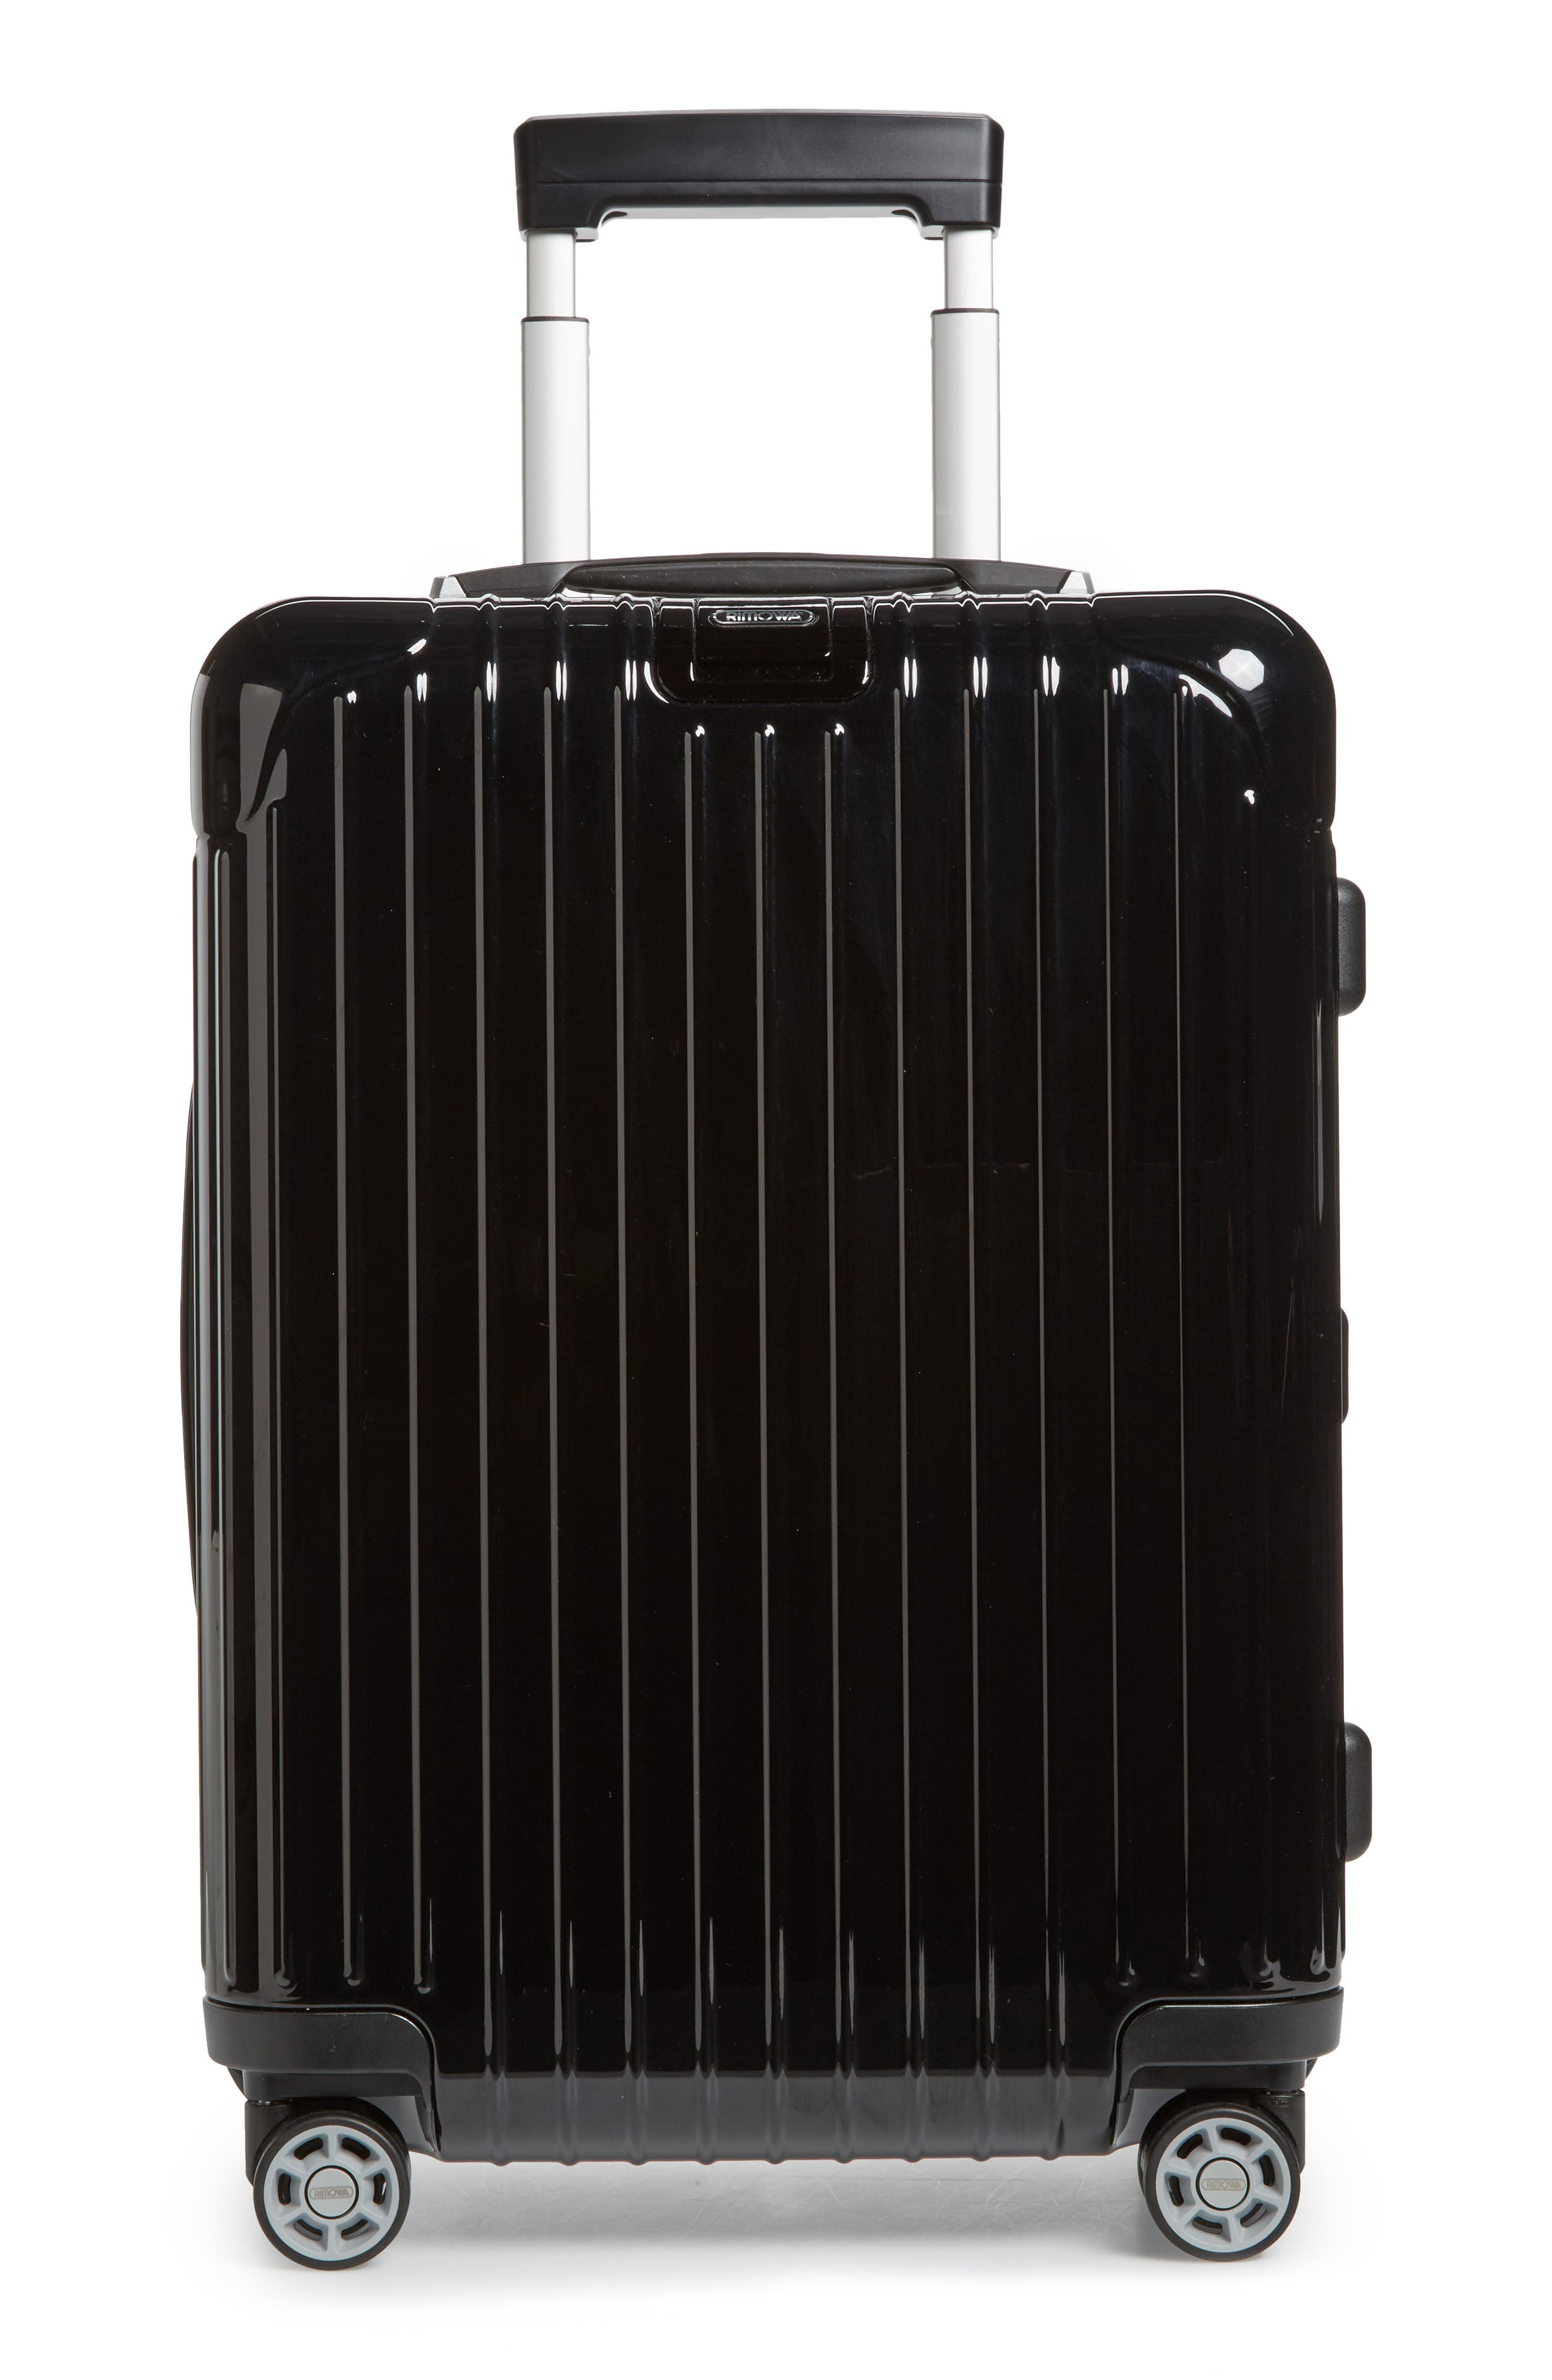 Main Image - RIMOWA Salsa Deluxe 22 Inch Cabin Multiwheel® Carry-On